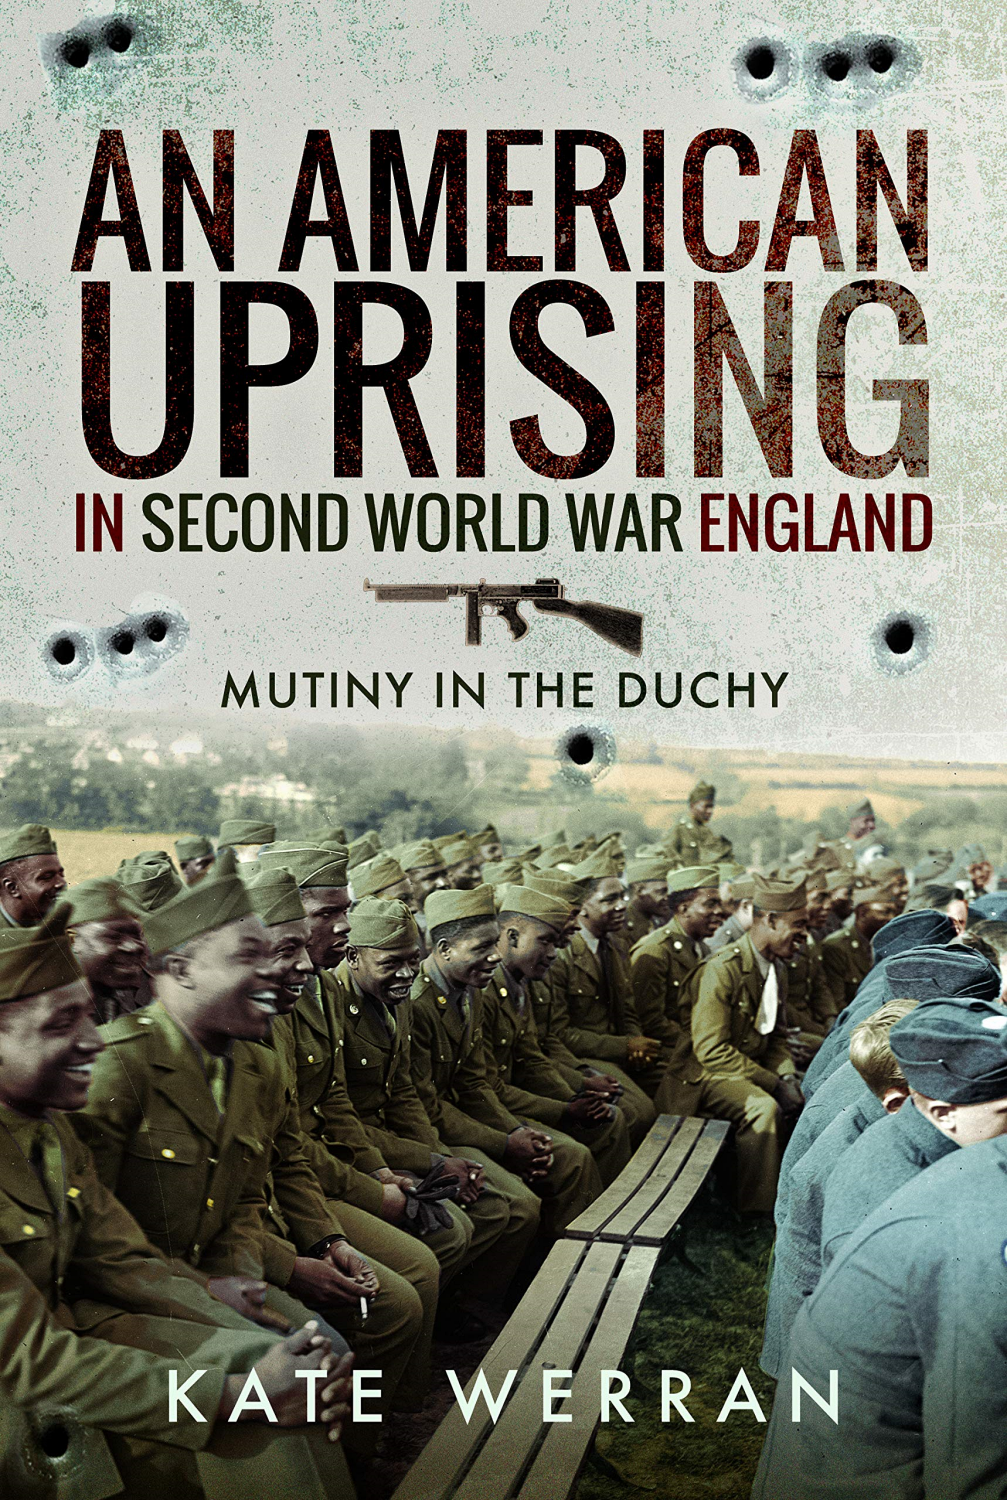 An American Uprising in Second World War England